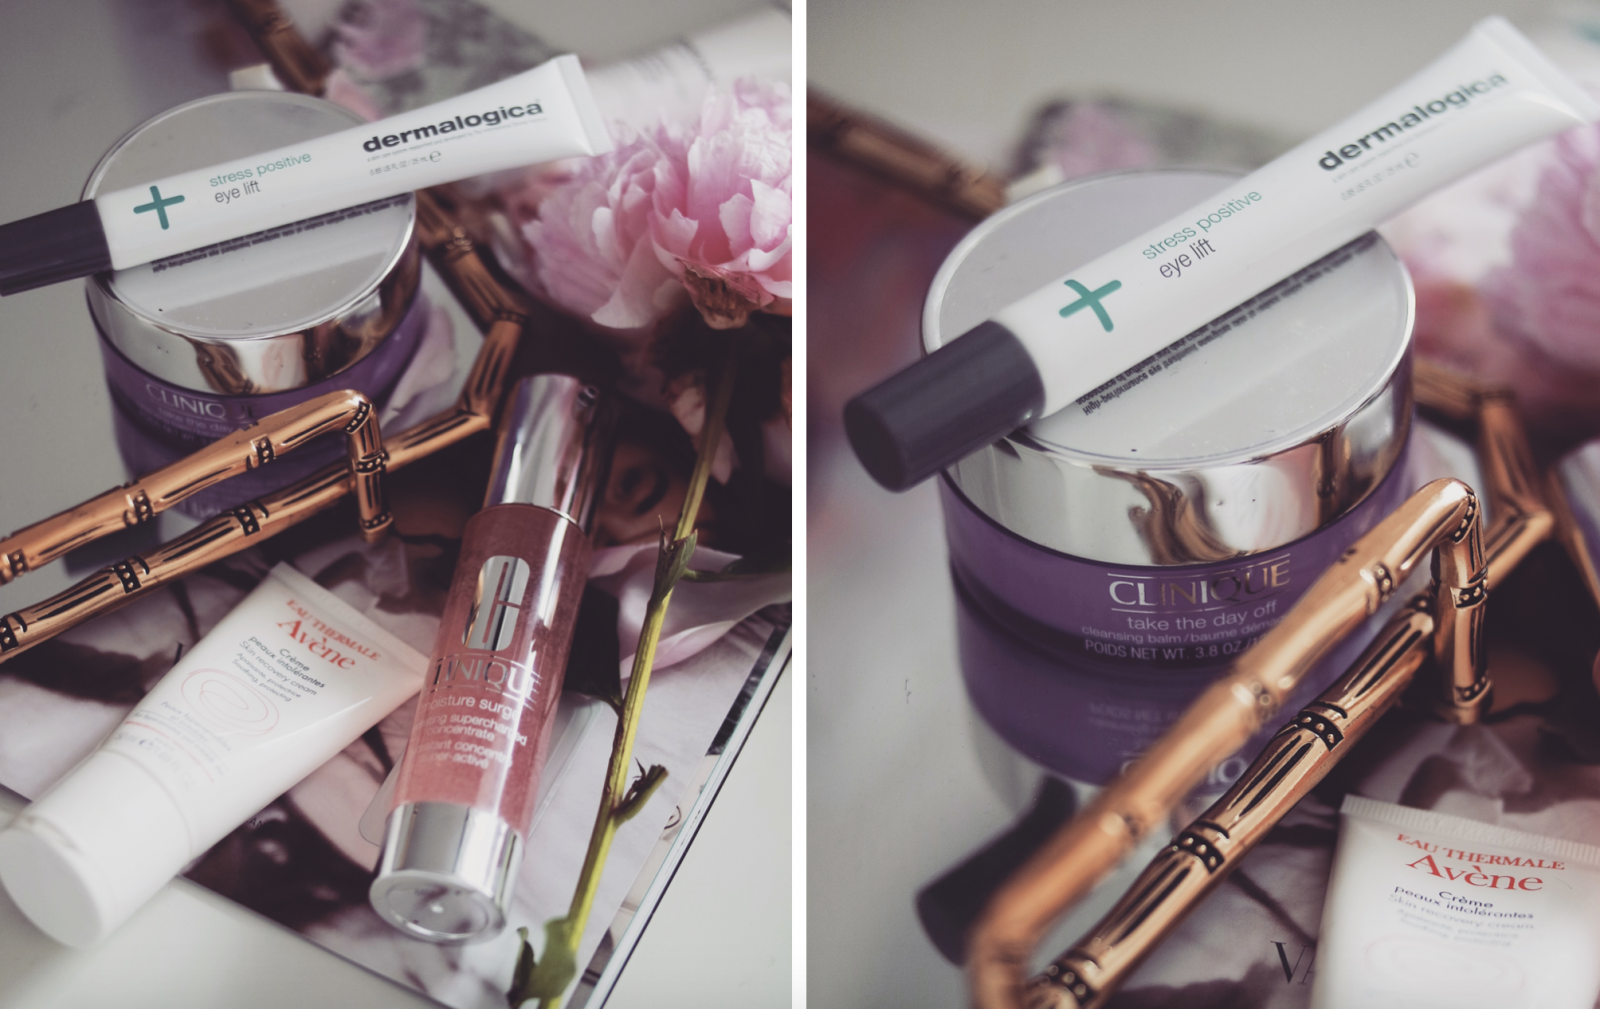 Travel Beauty Essentials - Face Beauty Products. Clinique Moisturiser and Cleansing Balm